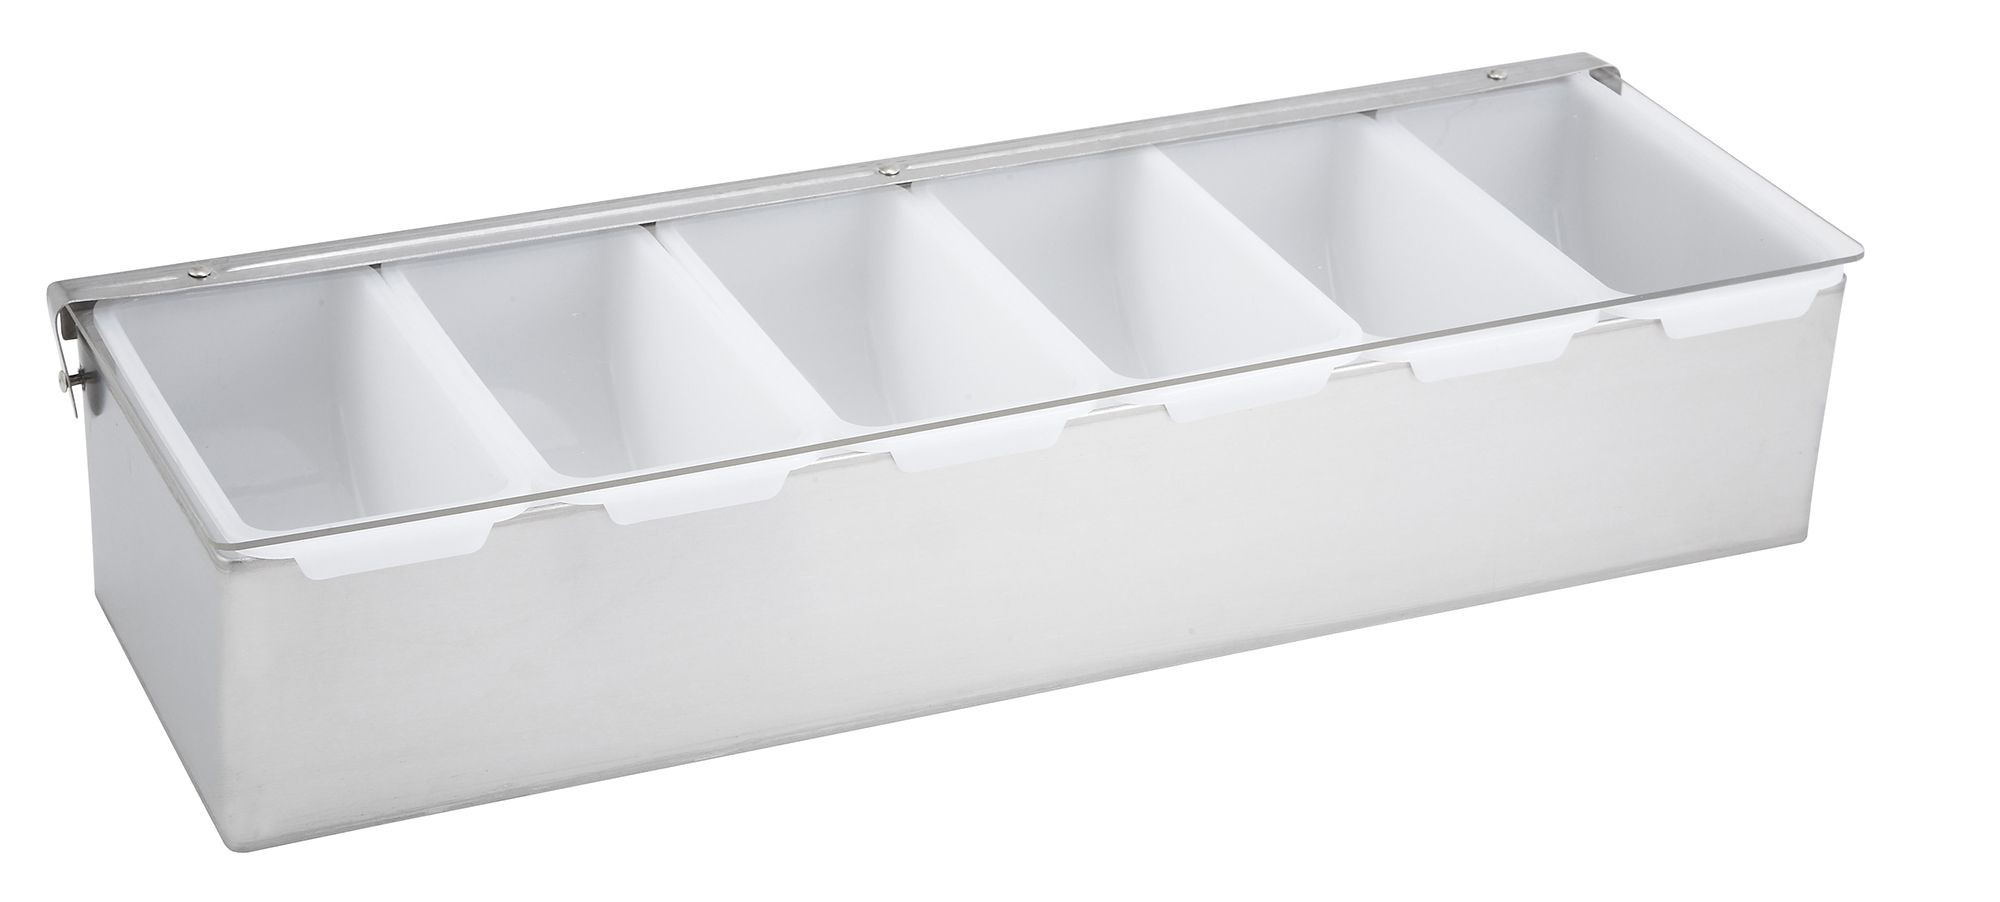 Winco CDP-6 Stainless Steel 6-Compartment Condiment Caddy